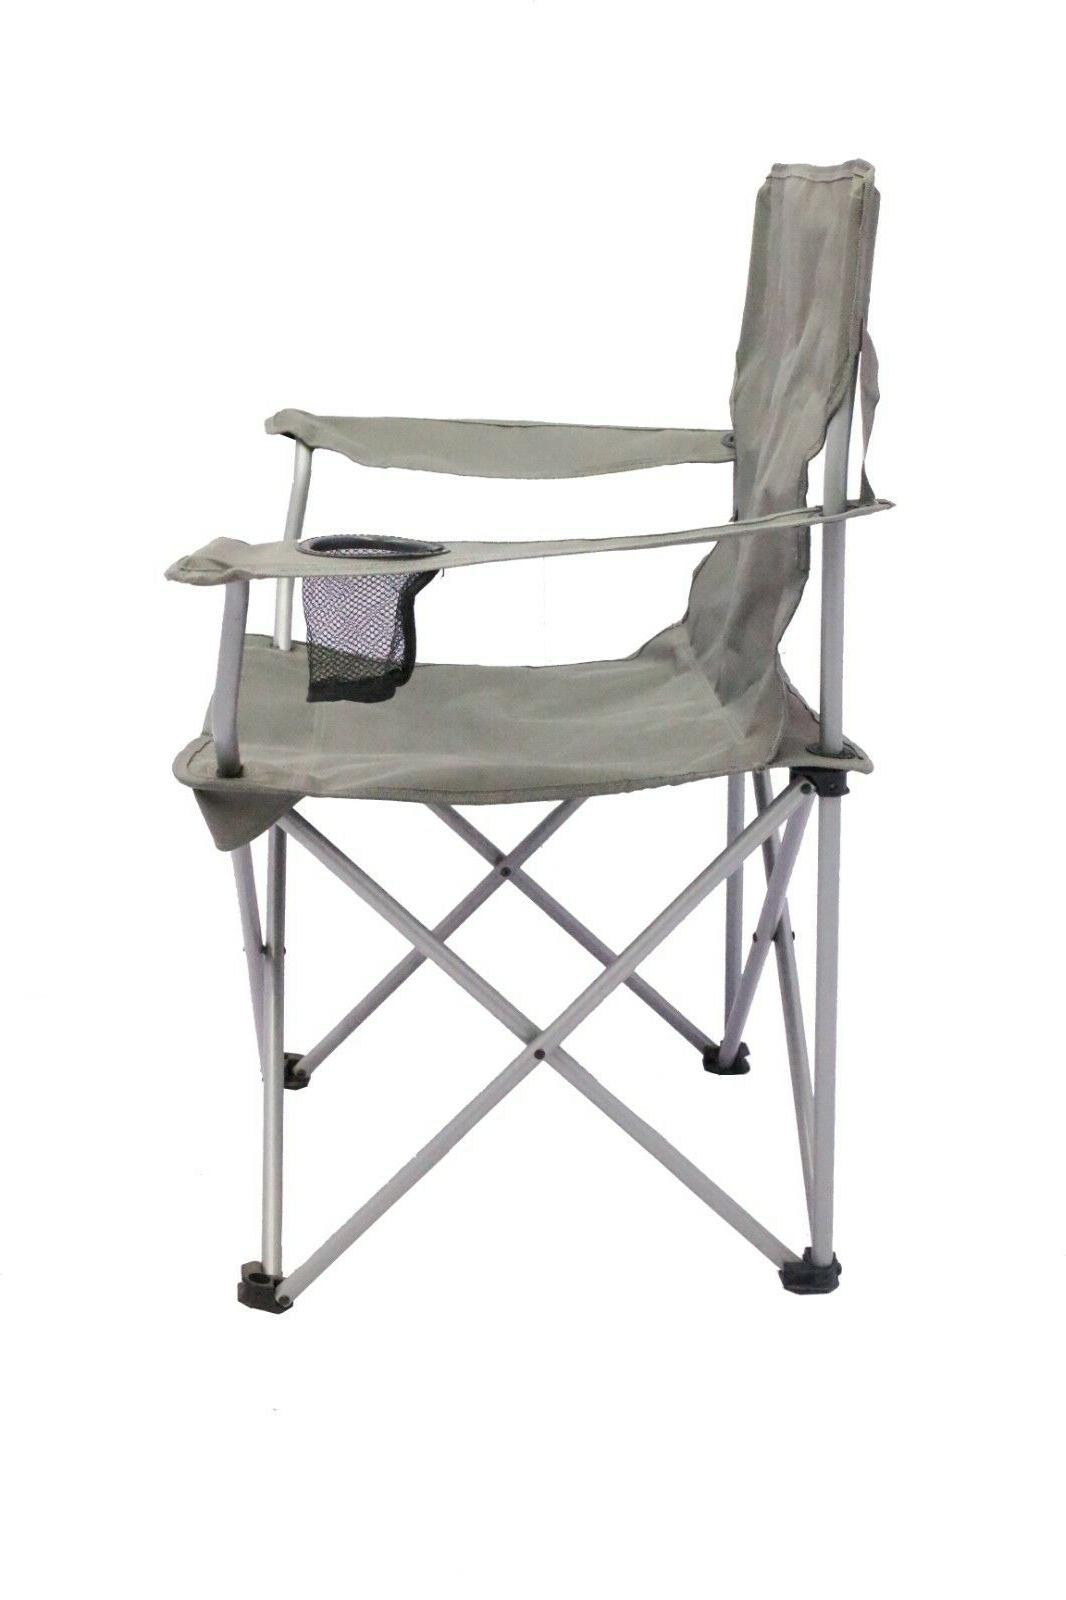 2 Pack Folding Camping Steel Frames One Armrest Gray Seat